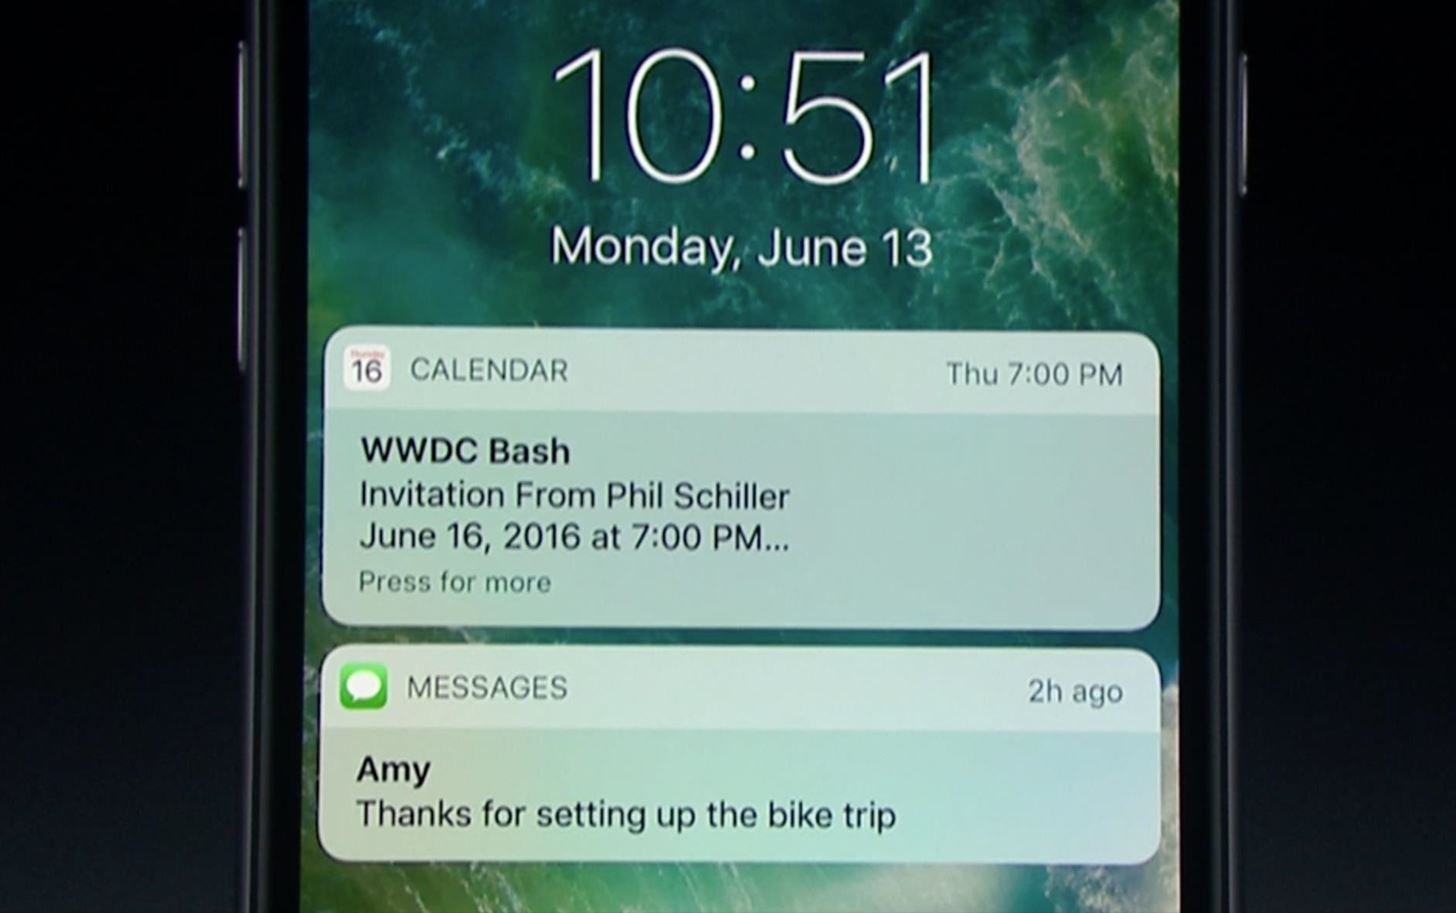 Your Iphone's Lock Screen Is Getting Better Widgets throughout Calendar On Lock Screen Iphone